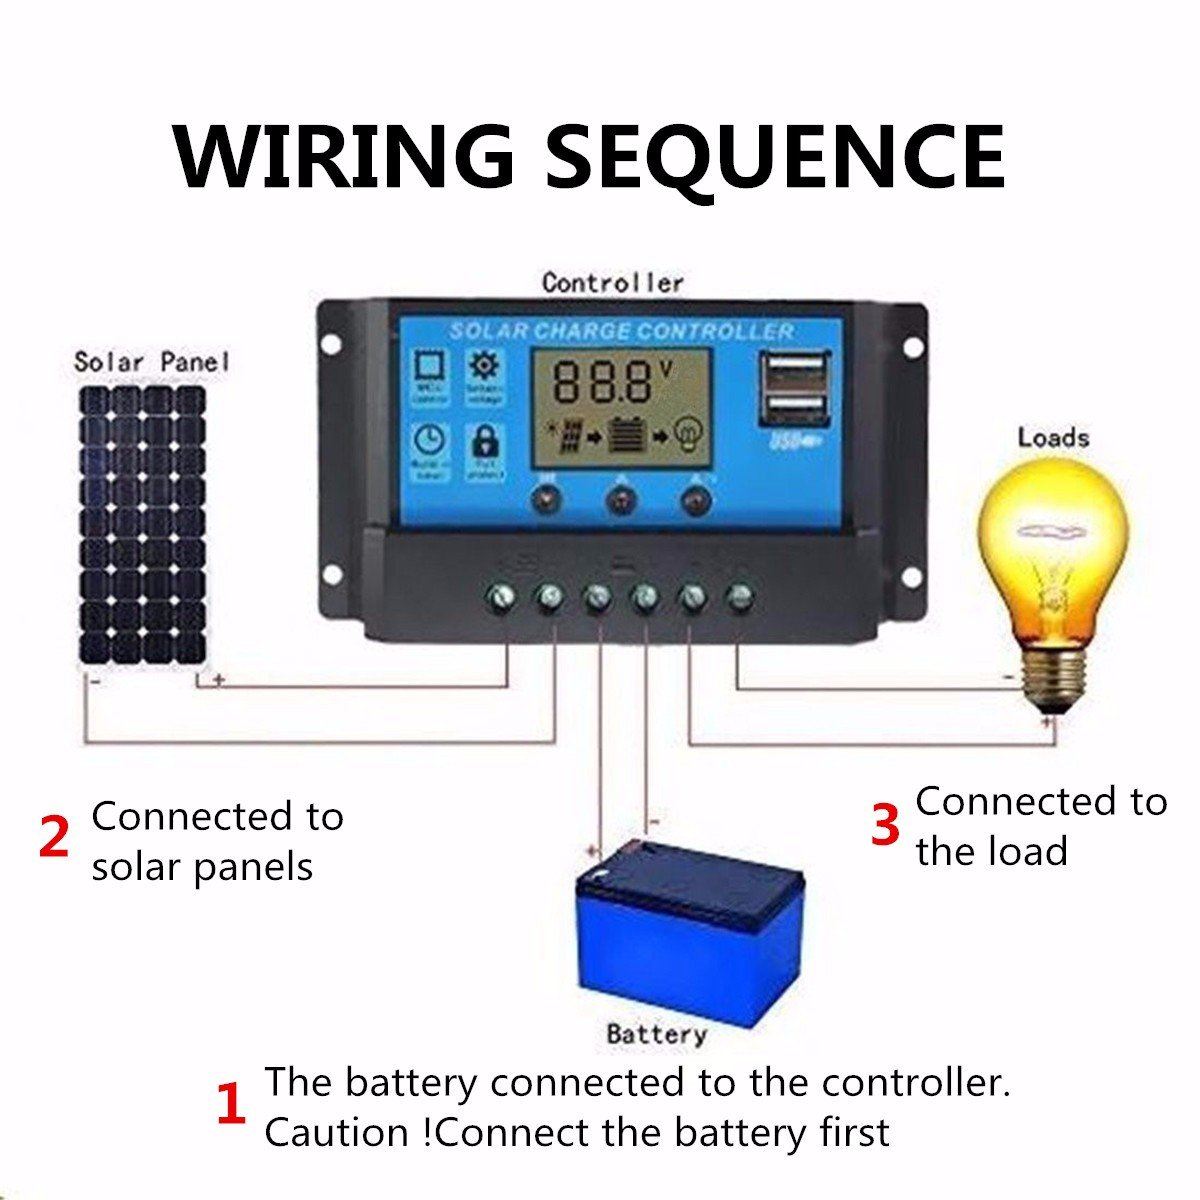 24 Volt Battery Bank Wiring Diagram in addition Arduino Solar together with Solar Panel Voltage furthermore Off Grid Solar Panel Wiring Diagram furthermore The Difference Between Series And Parallel Circuits. on solar panel charger circuit